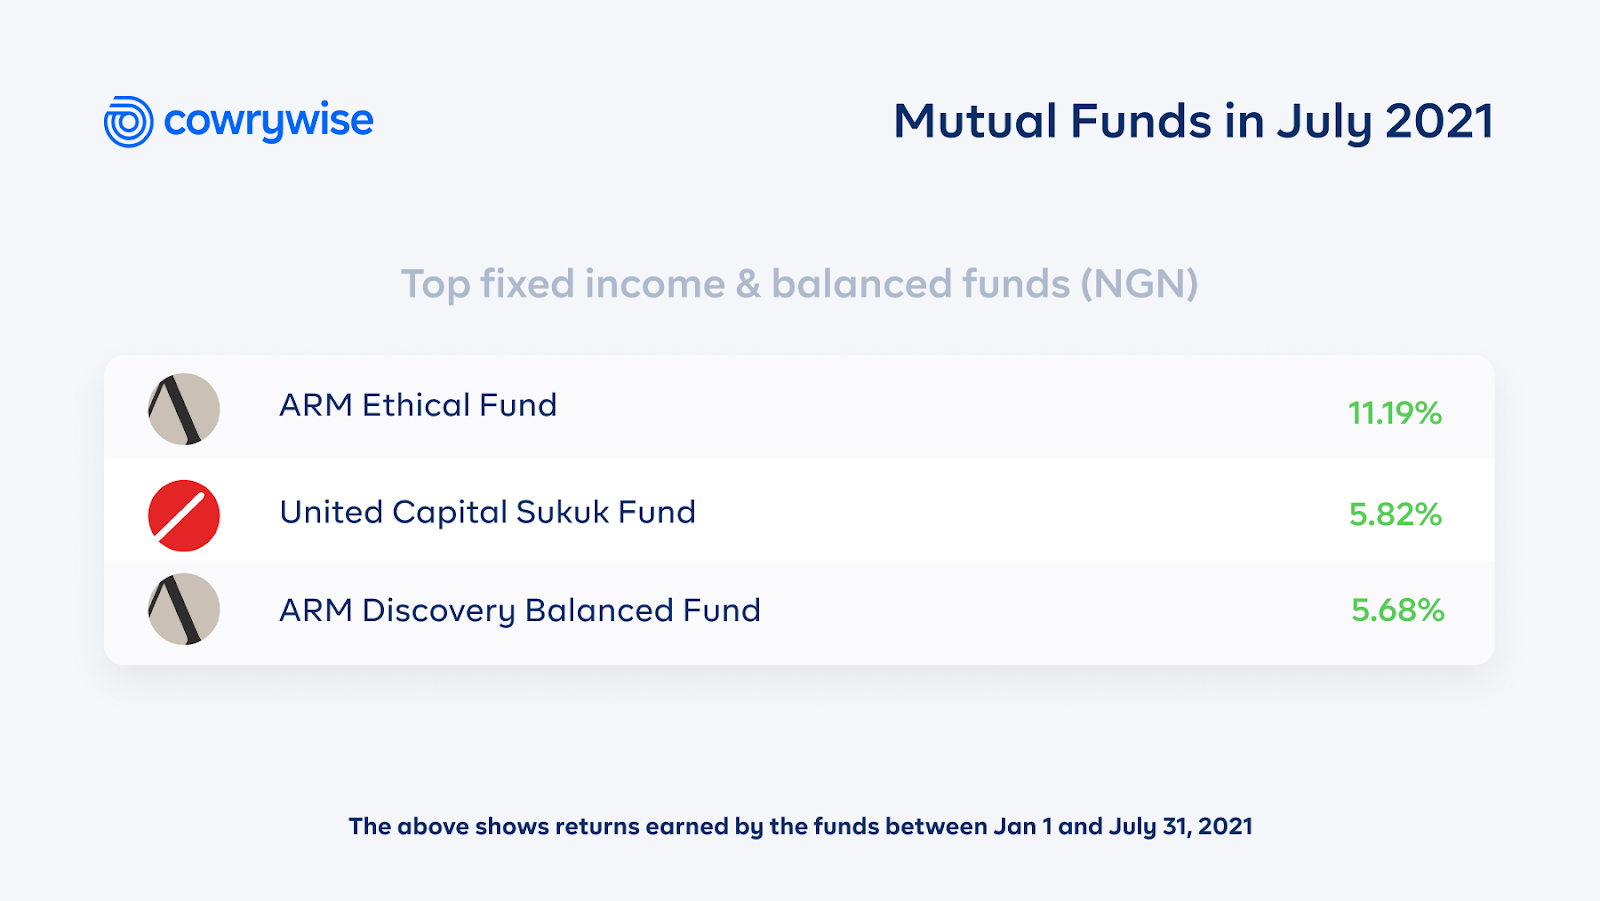 top fixed income and balanced funds in July 2021